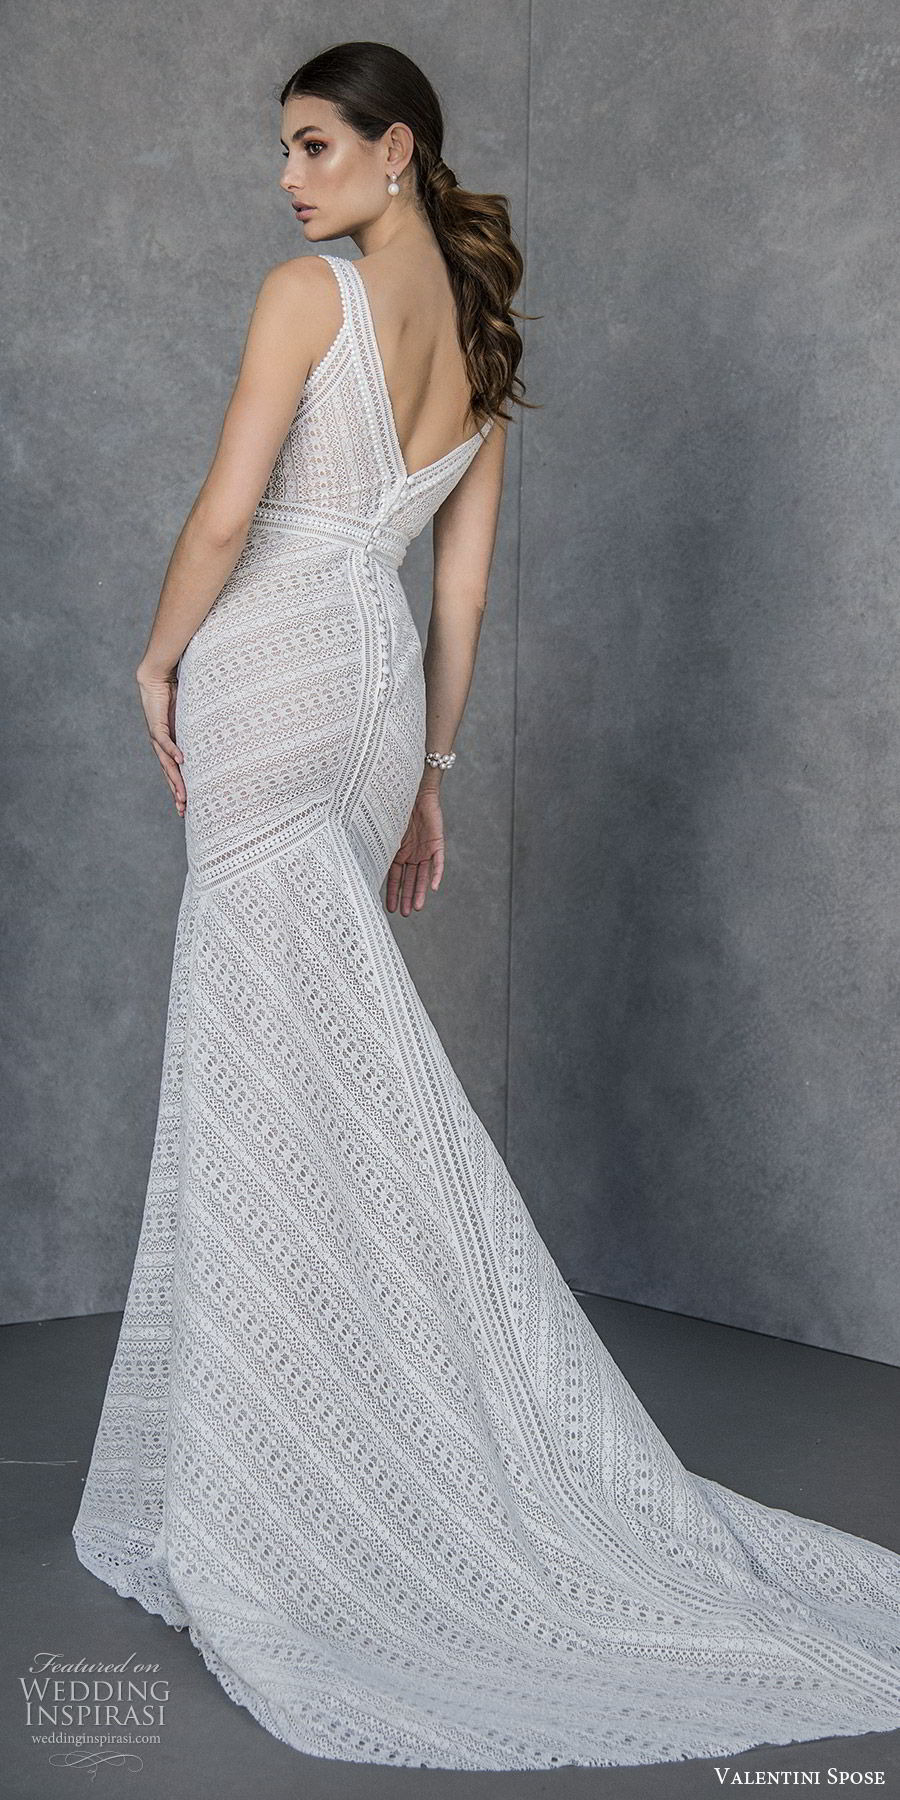 valentini spose spring 2020 bridal sleeveless thick straps deep v neckline fit flare mermaid wedding dress (5) v back chapel train modern boho chic bv